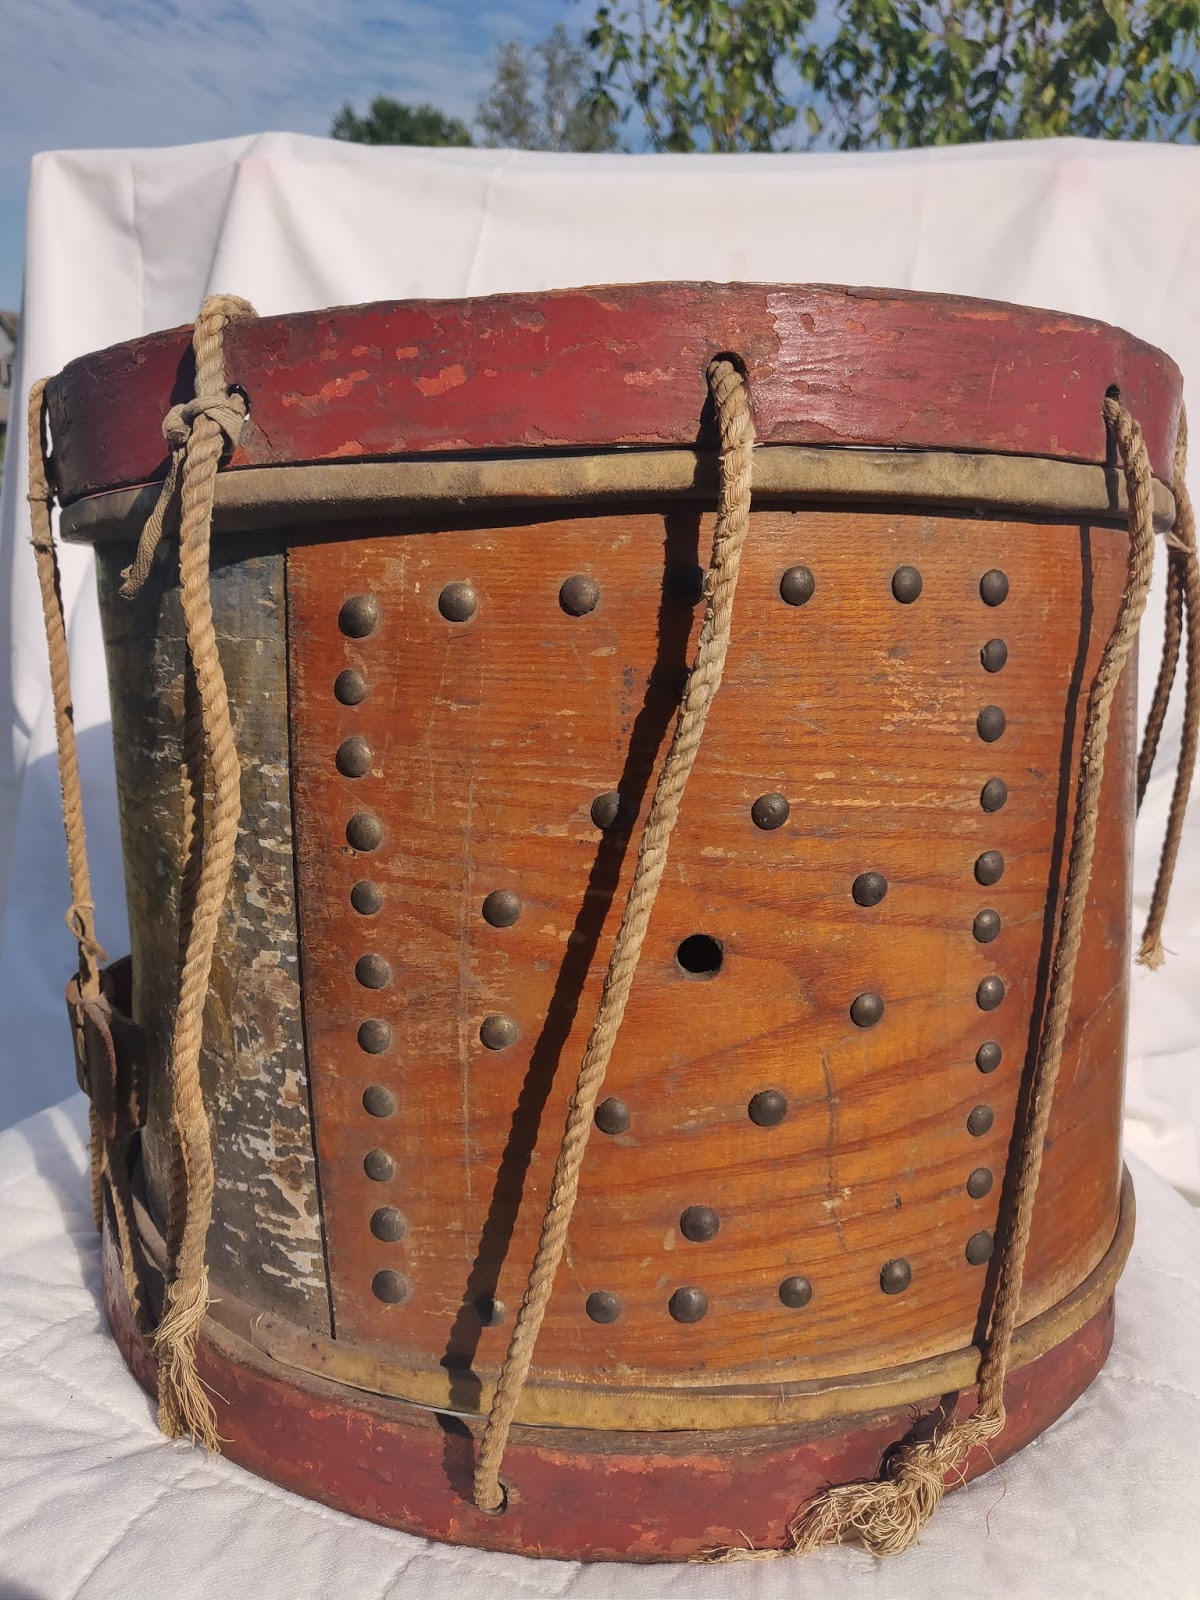 Field Drums A K Of Rope Tension Parts Diagram Cooperman Fife And Just Fifty Miles To The East Was Bethlehem Settled In 1741 By Christian Sect German Methodists Called Moravians Germans Brought With Them